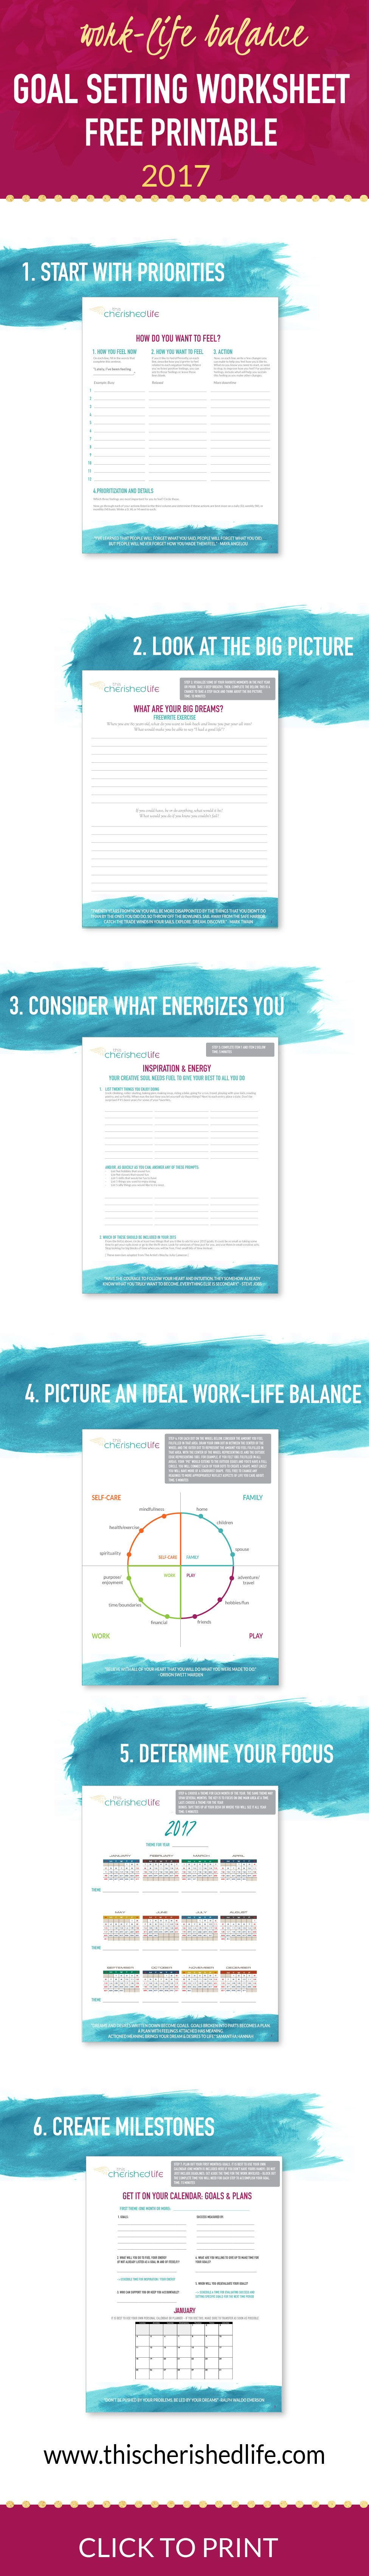 FREE 2017 goal setting printable worksheet - Set goals that matter ...